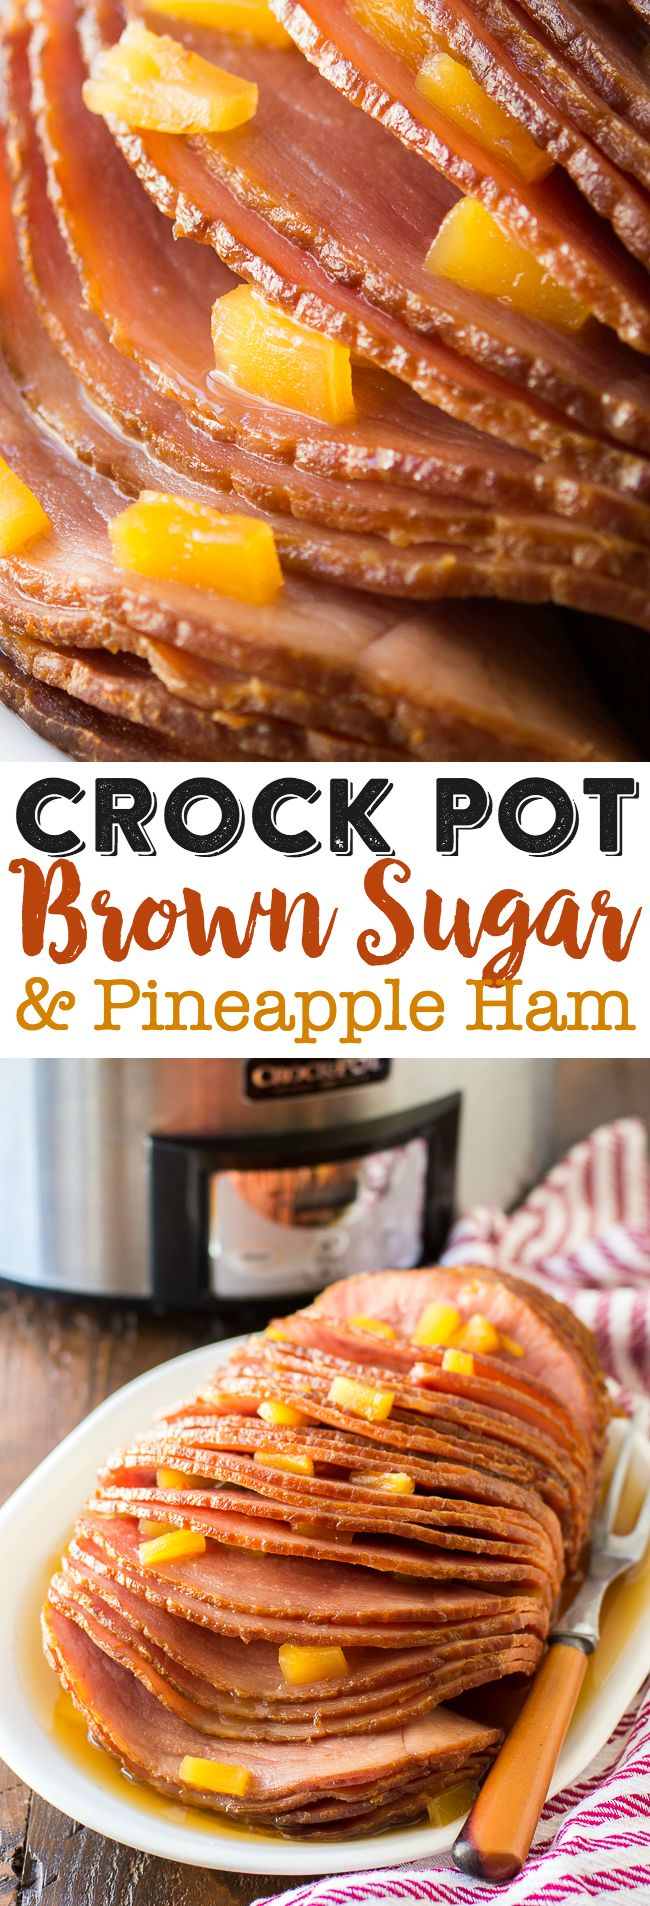 Crock Pot Brown Sugar Ham Recipe | Slow Cooker Glazed Ham | Brown Sugar Maple Pineapple Ham | Crock Pot Spiral Cut Ham Recipe